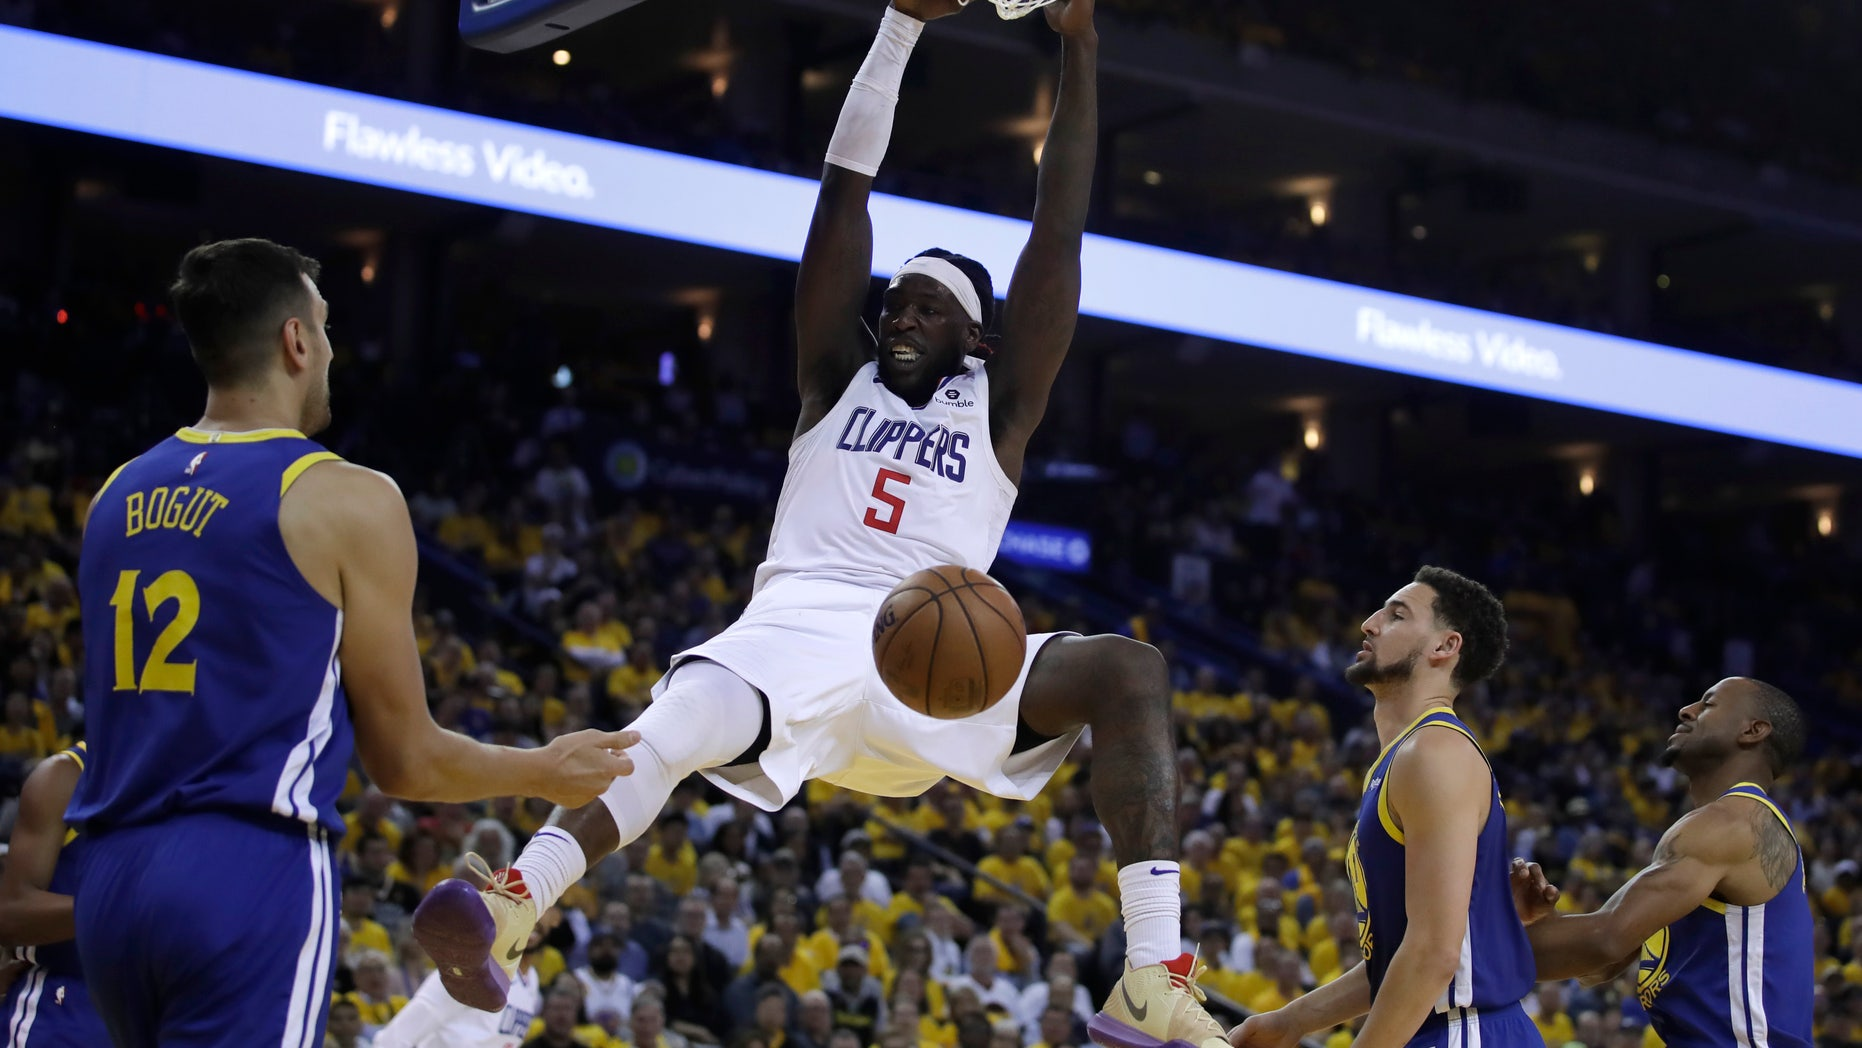 Los Angeles Clippers' Montrezl Harrell (5) scores as Golden State Warriors' Andrew Bogut (12), Klay Thompson, second from right, and Andre Iguodala watch during the second half in Game 5 of a first-round NBA basketball playoff series, Wednesday, April 24, 2019, in Oakland, Calif.